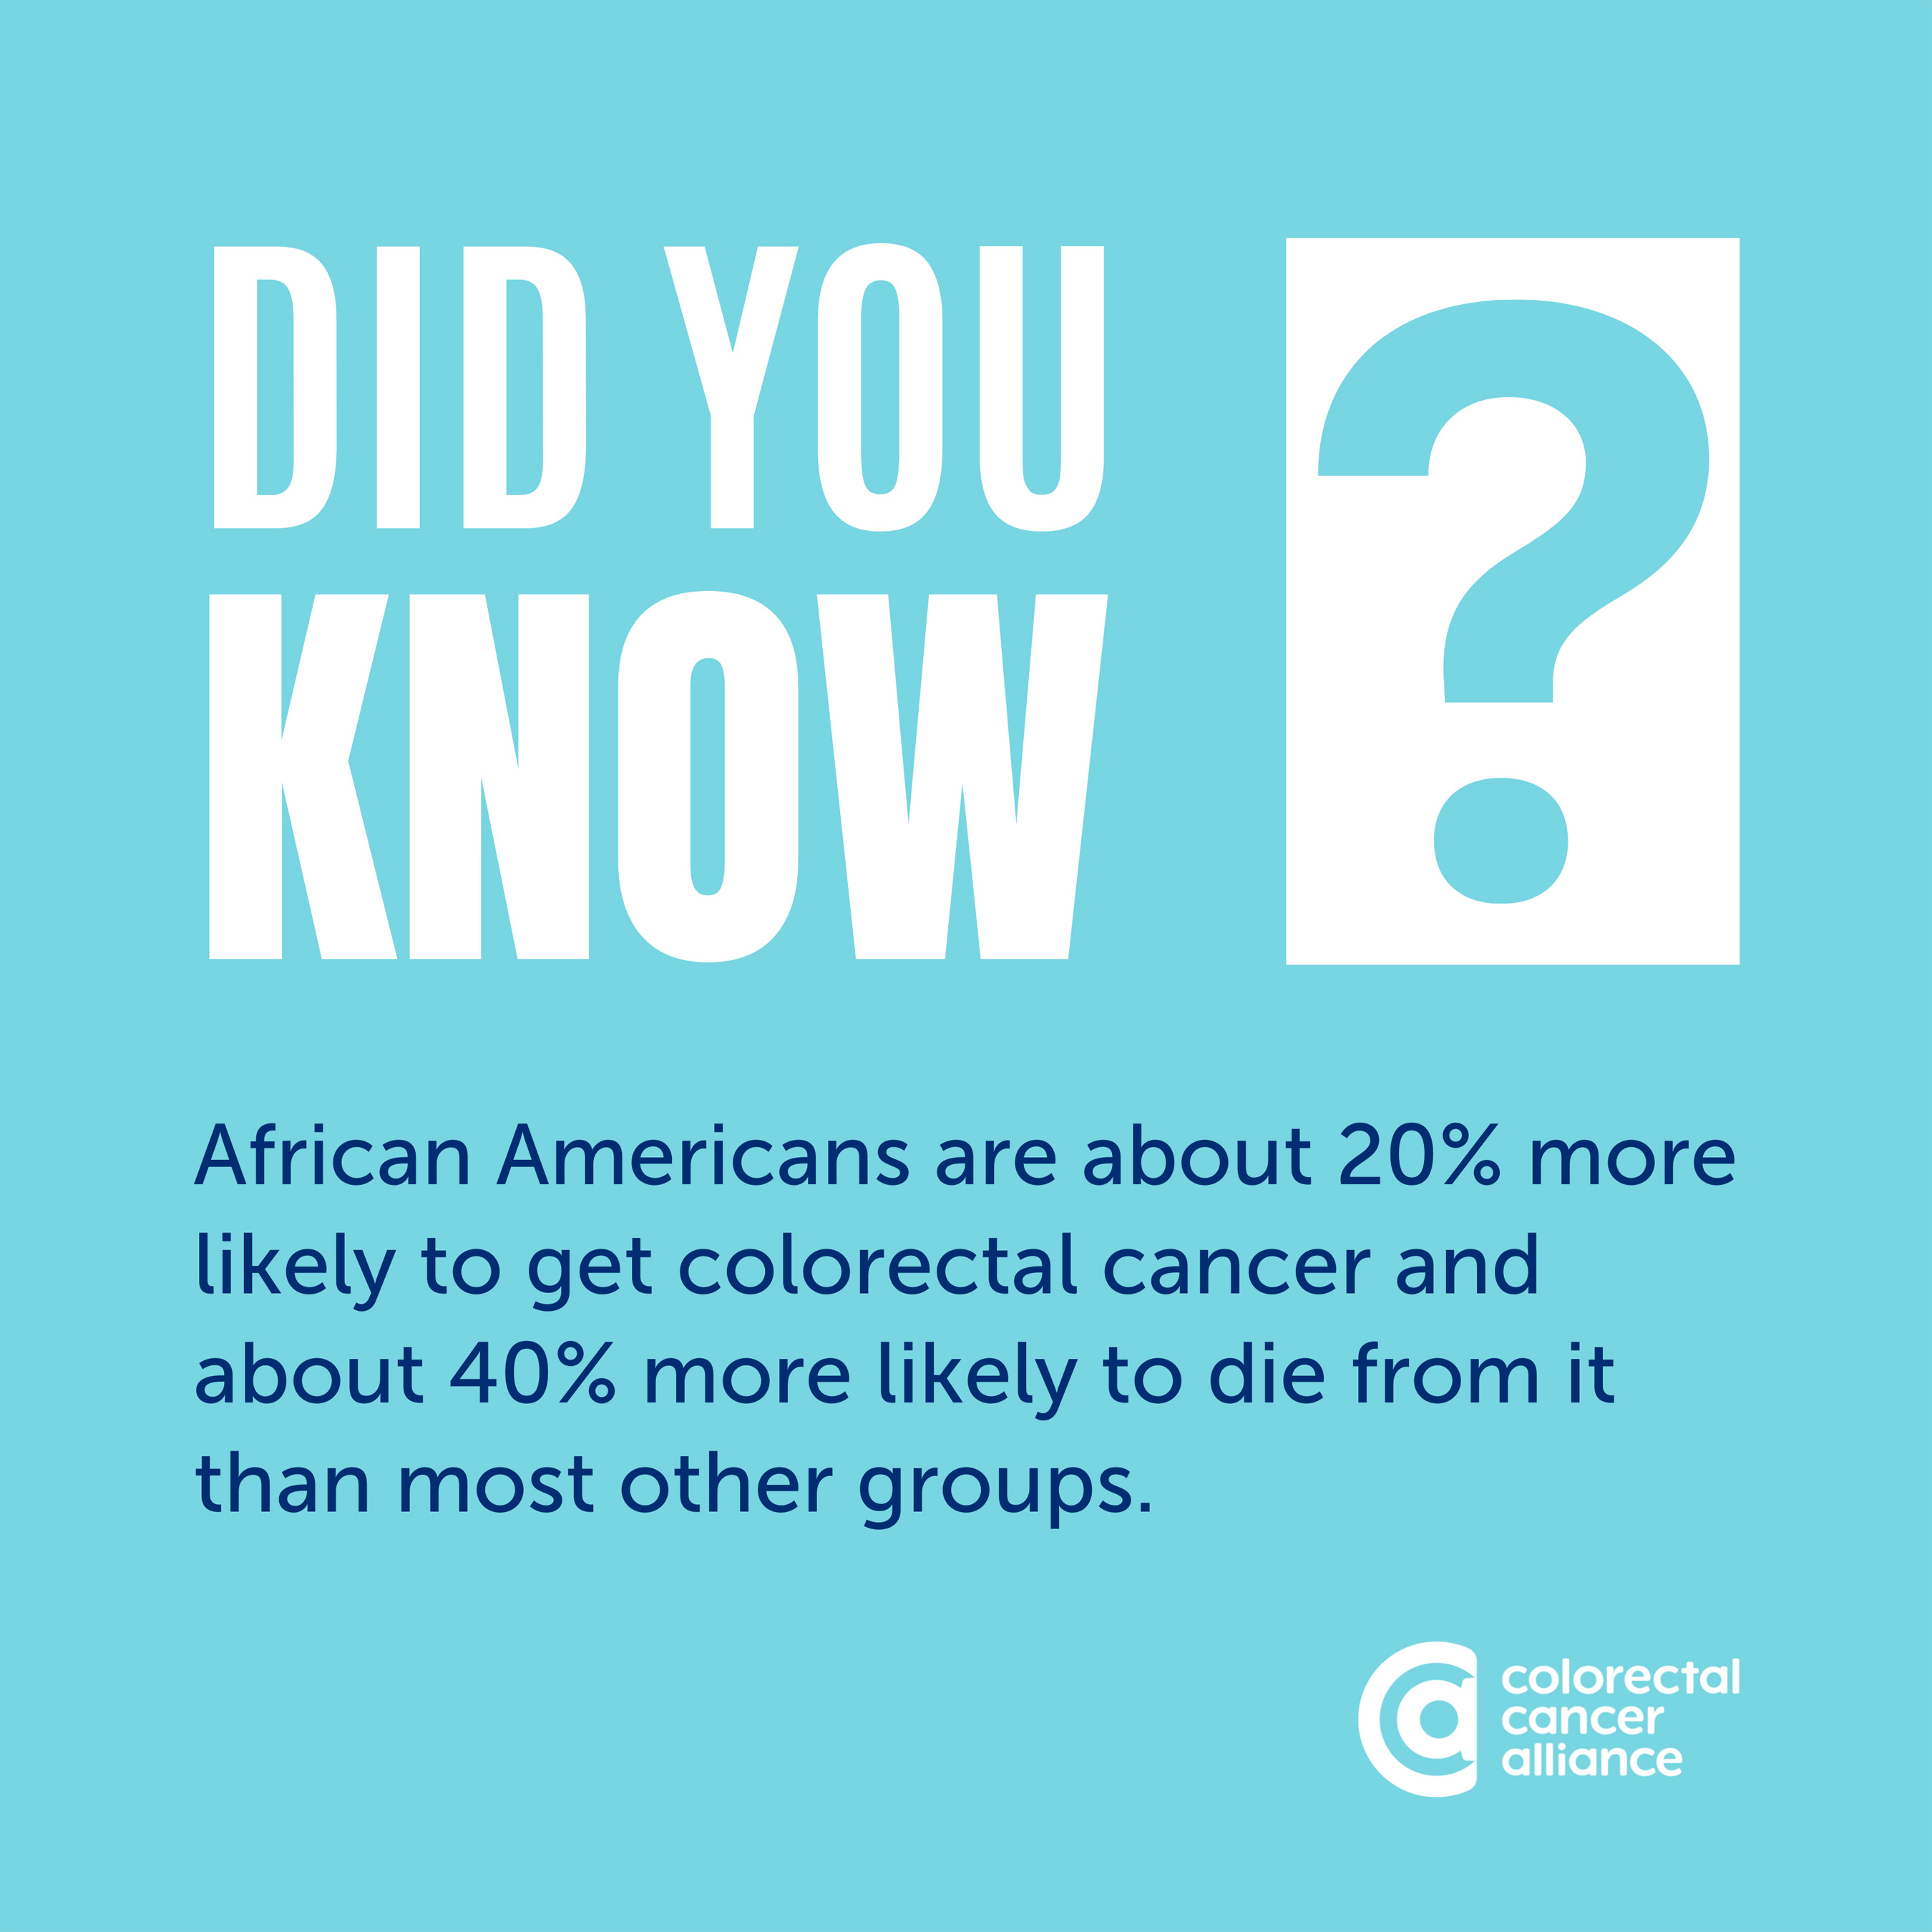 Colorectal cancer and the impact and disparities among African Americans